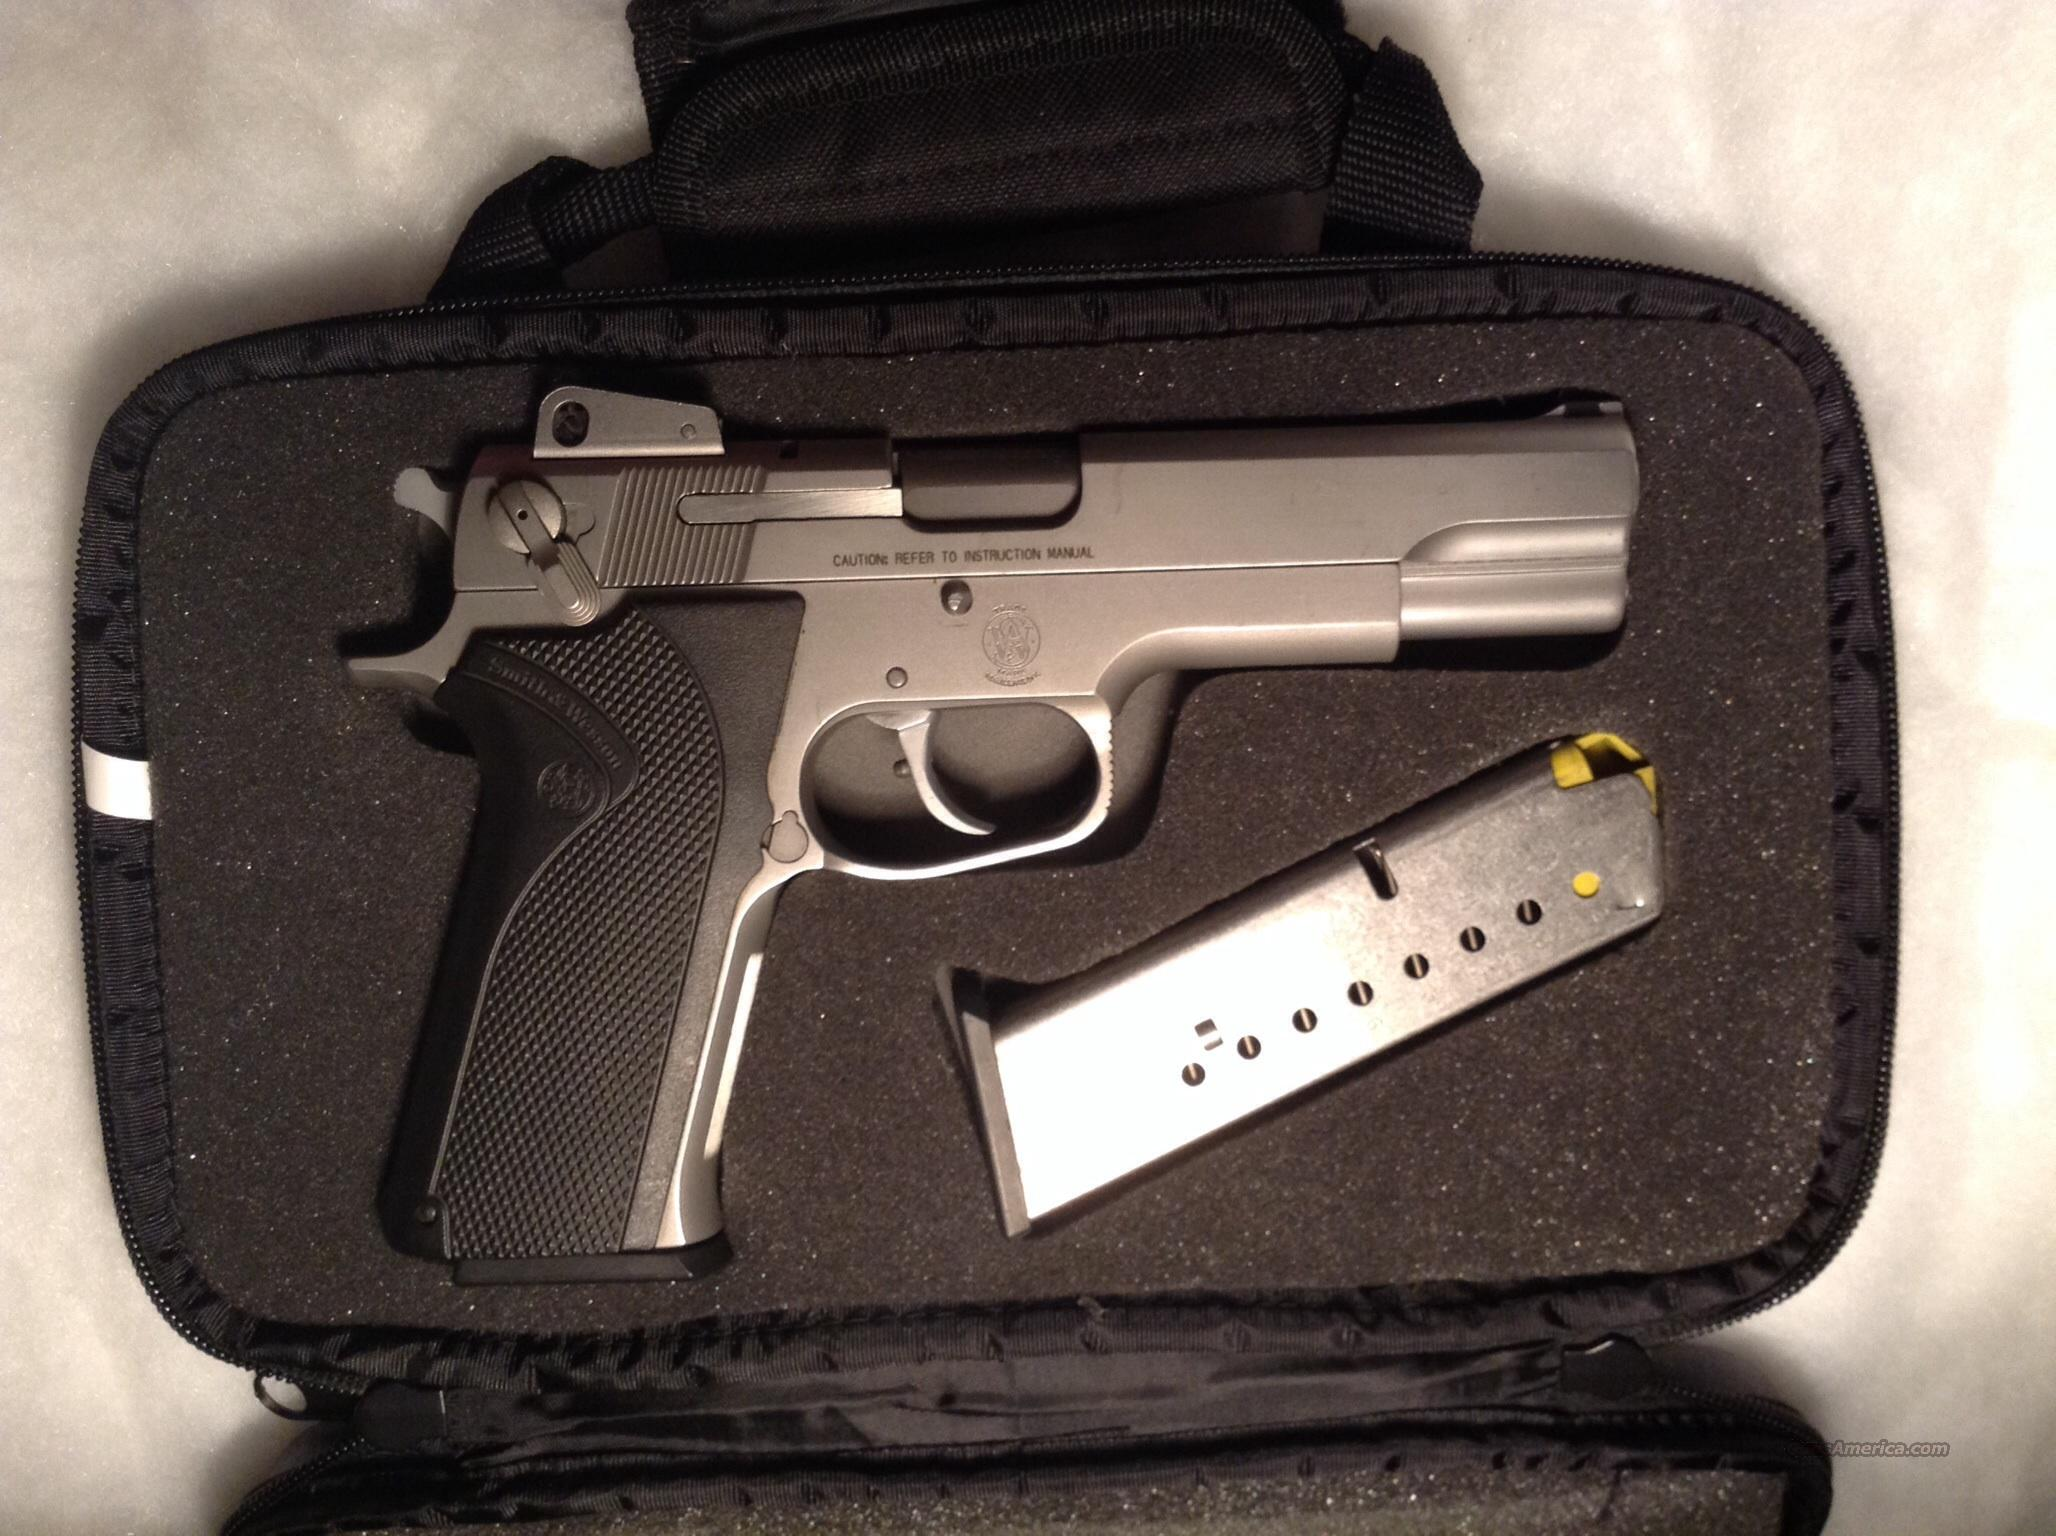 Smith&Wesson 1006 10mm  Guns > Pistols > Smith & Wesson Pistols - Autos > Steel Frame